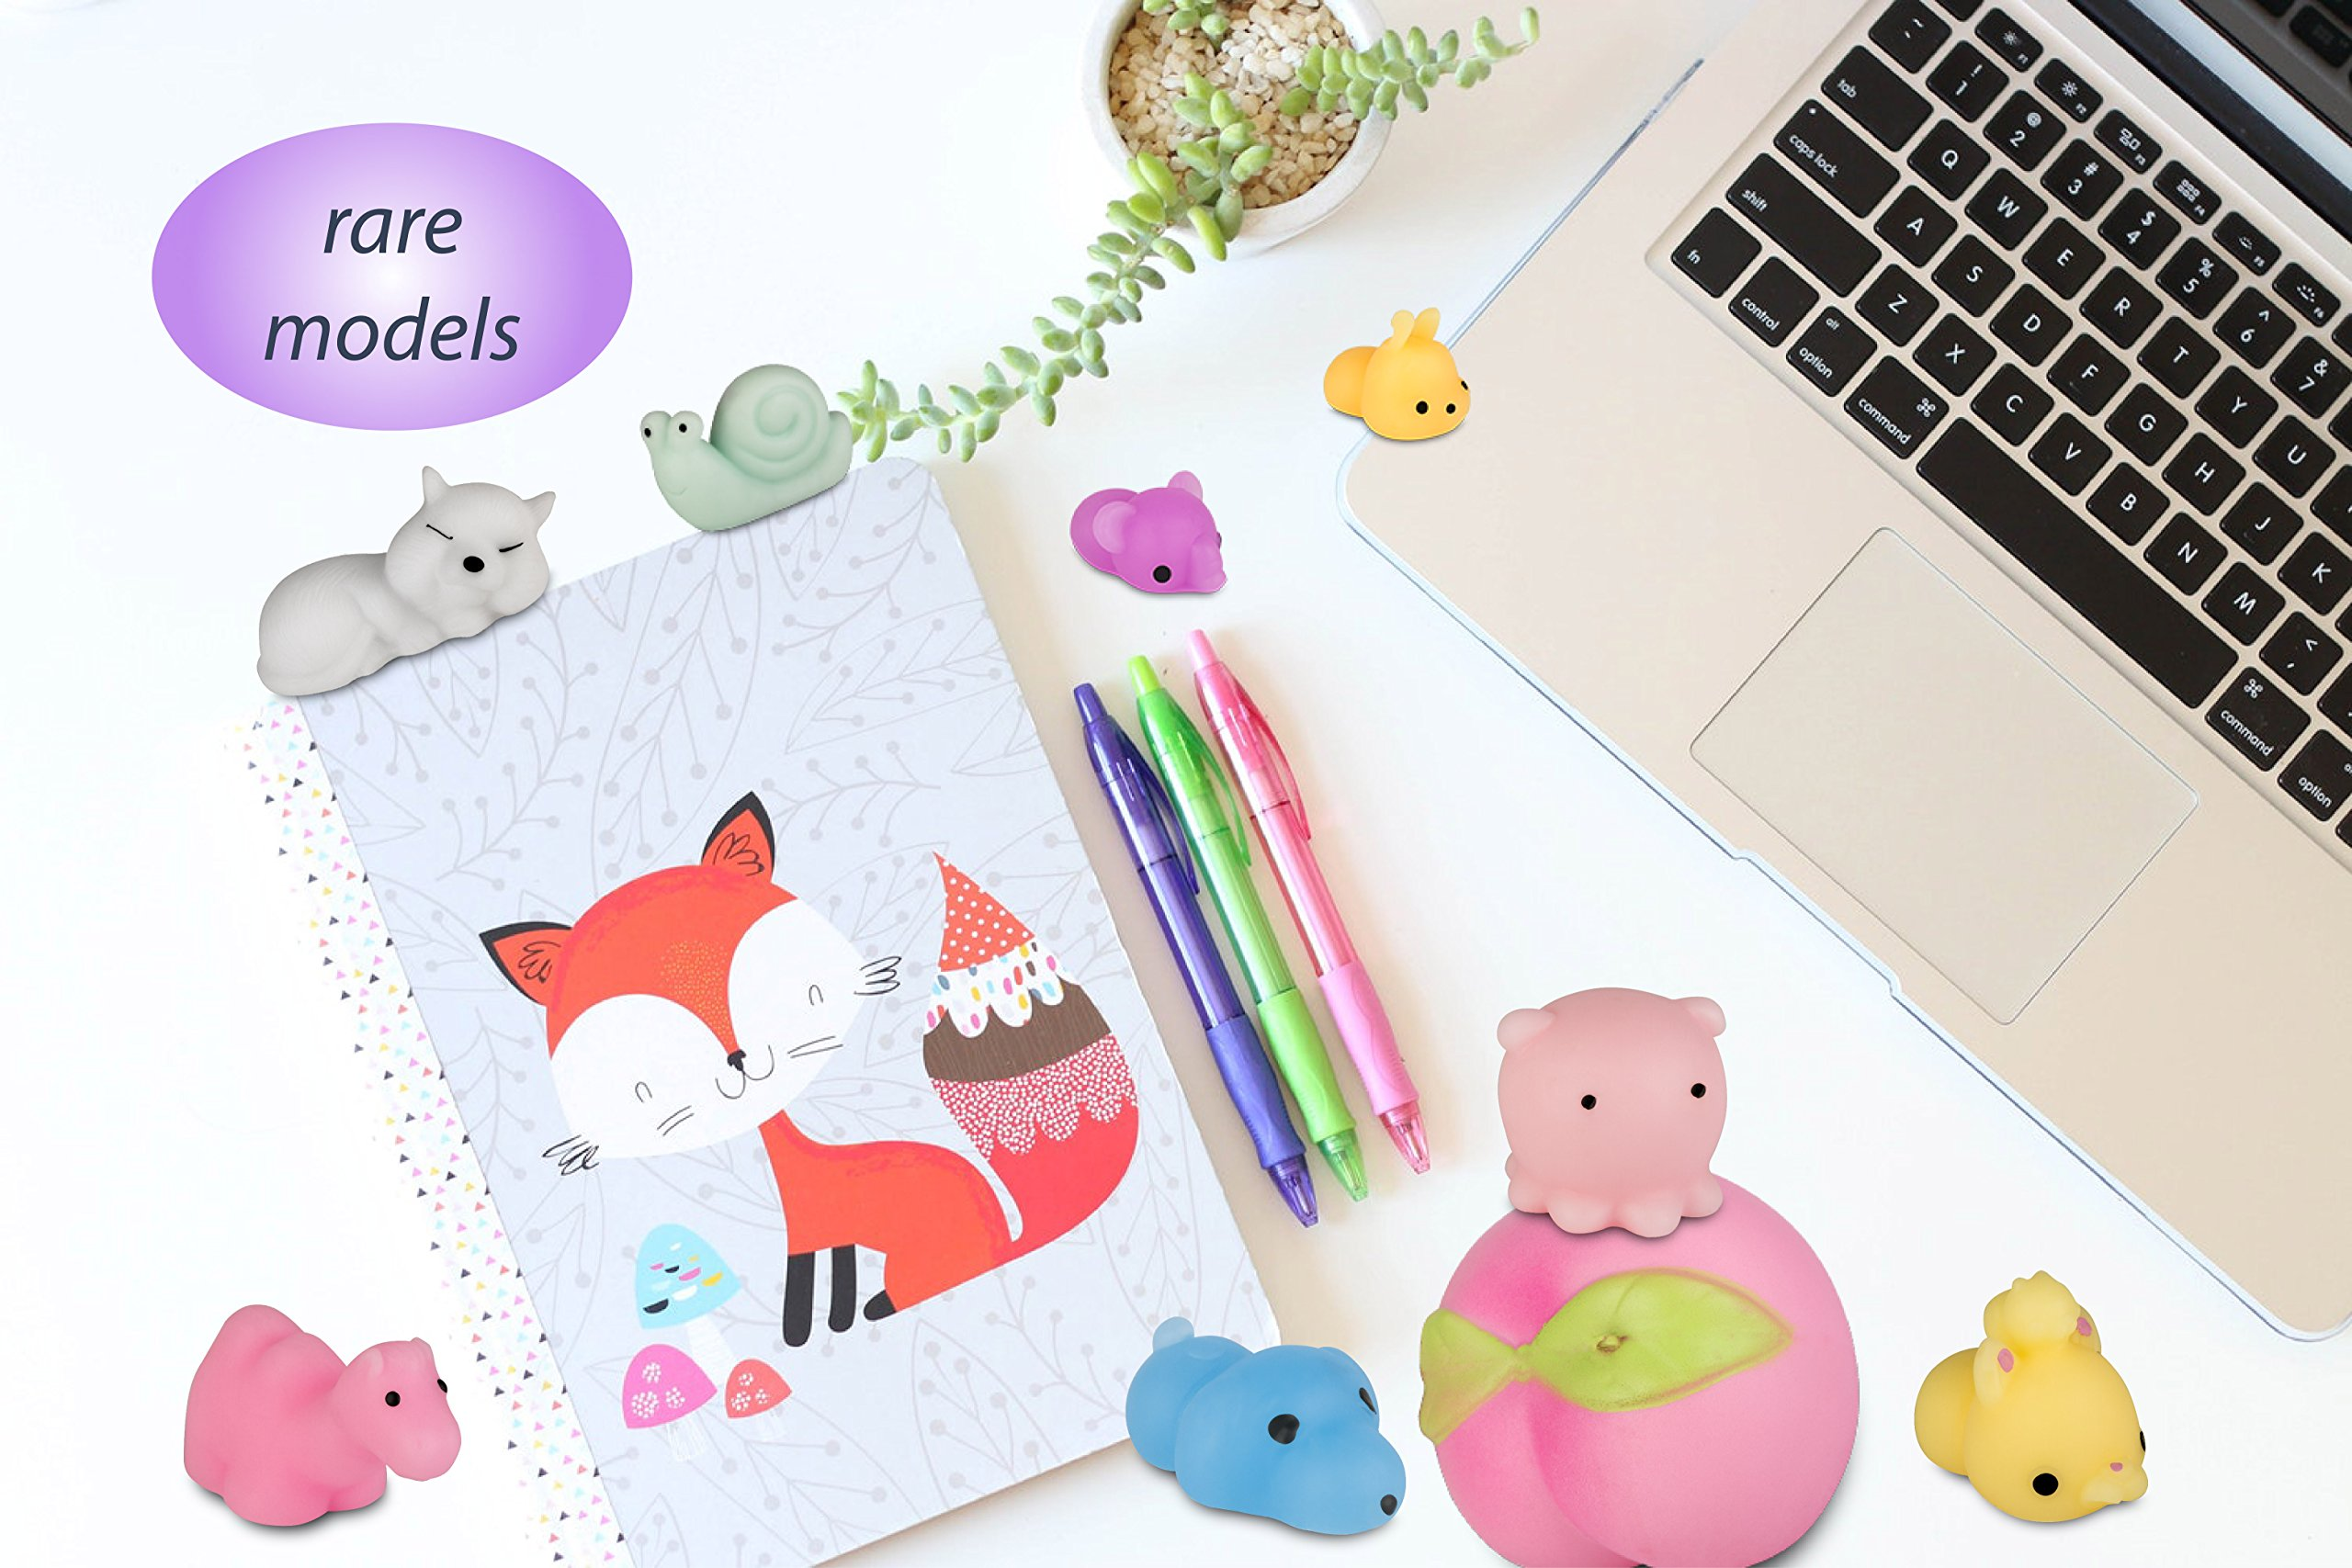 WUAH Mochi Squishy Toys 25 pcs Set: Soft And Squishy For Stress Relief, Kawaii Designs For Kids And Adults By Store